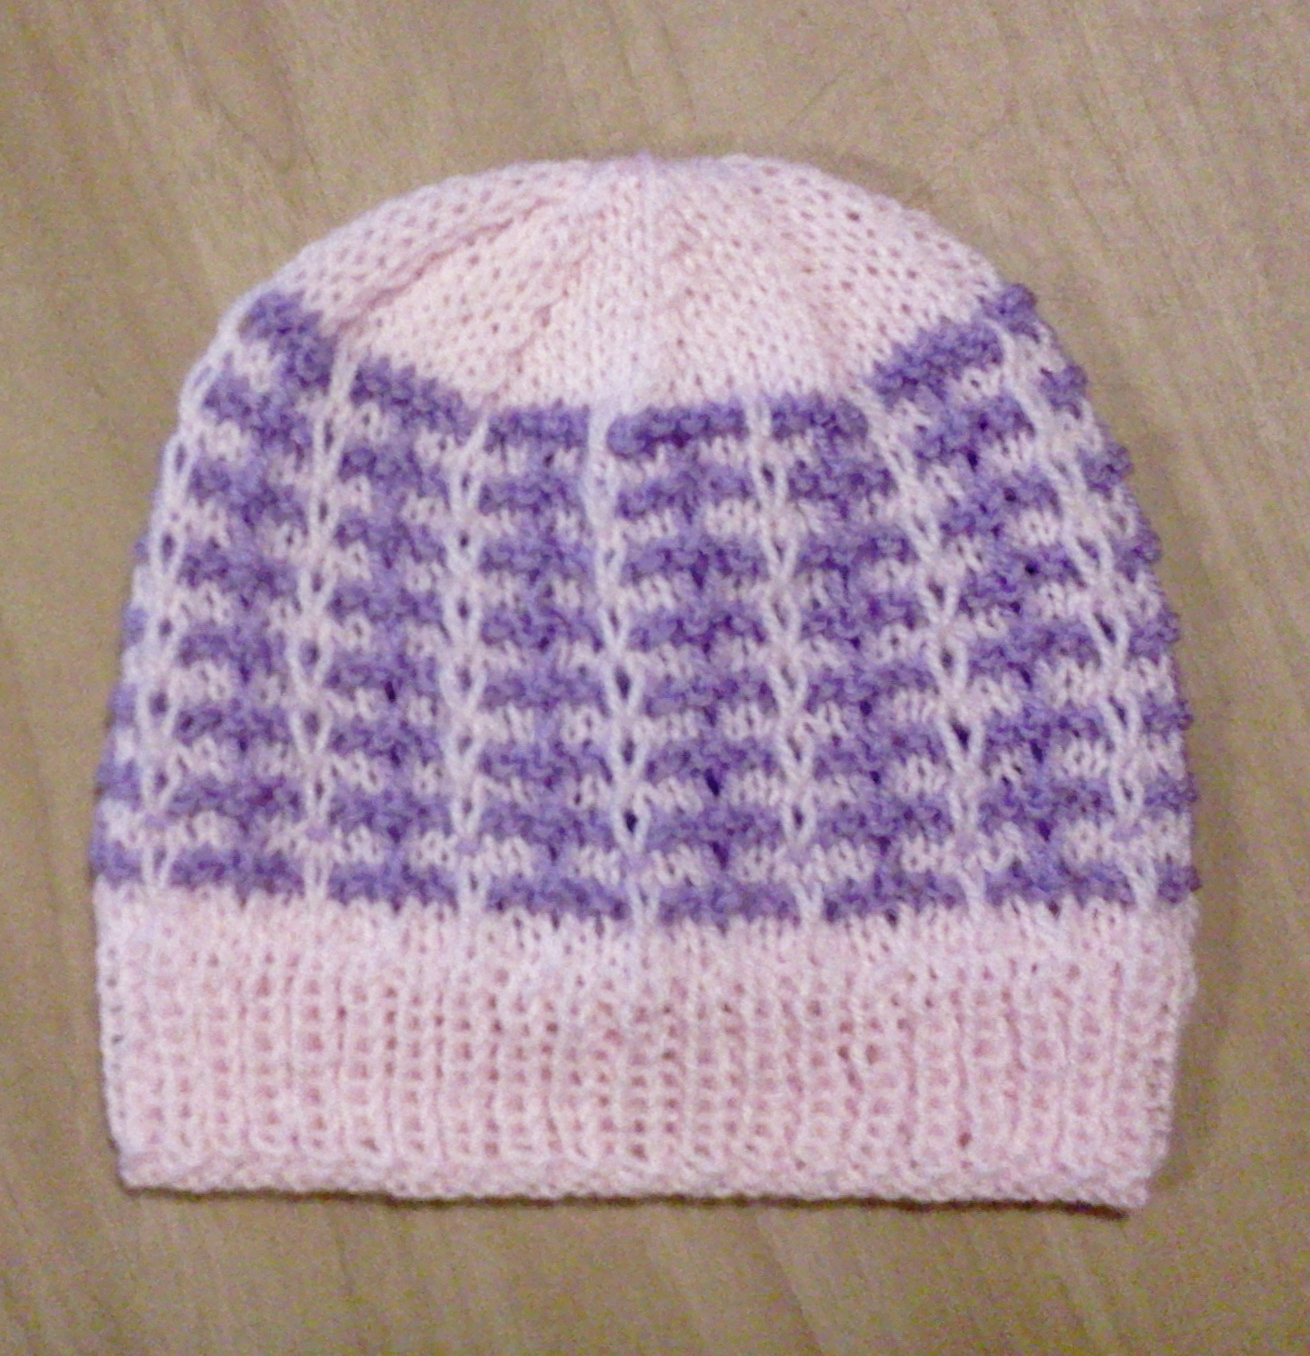 Knitting Terms Tbl : Knitit two colour beanie free pattern no